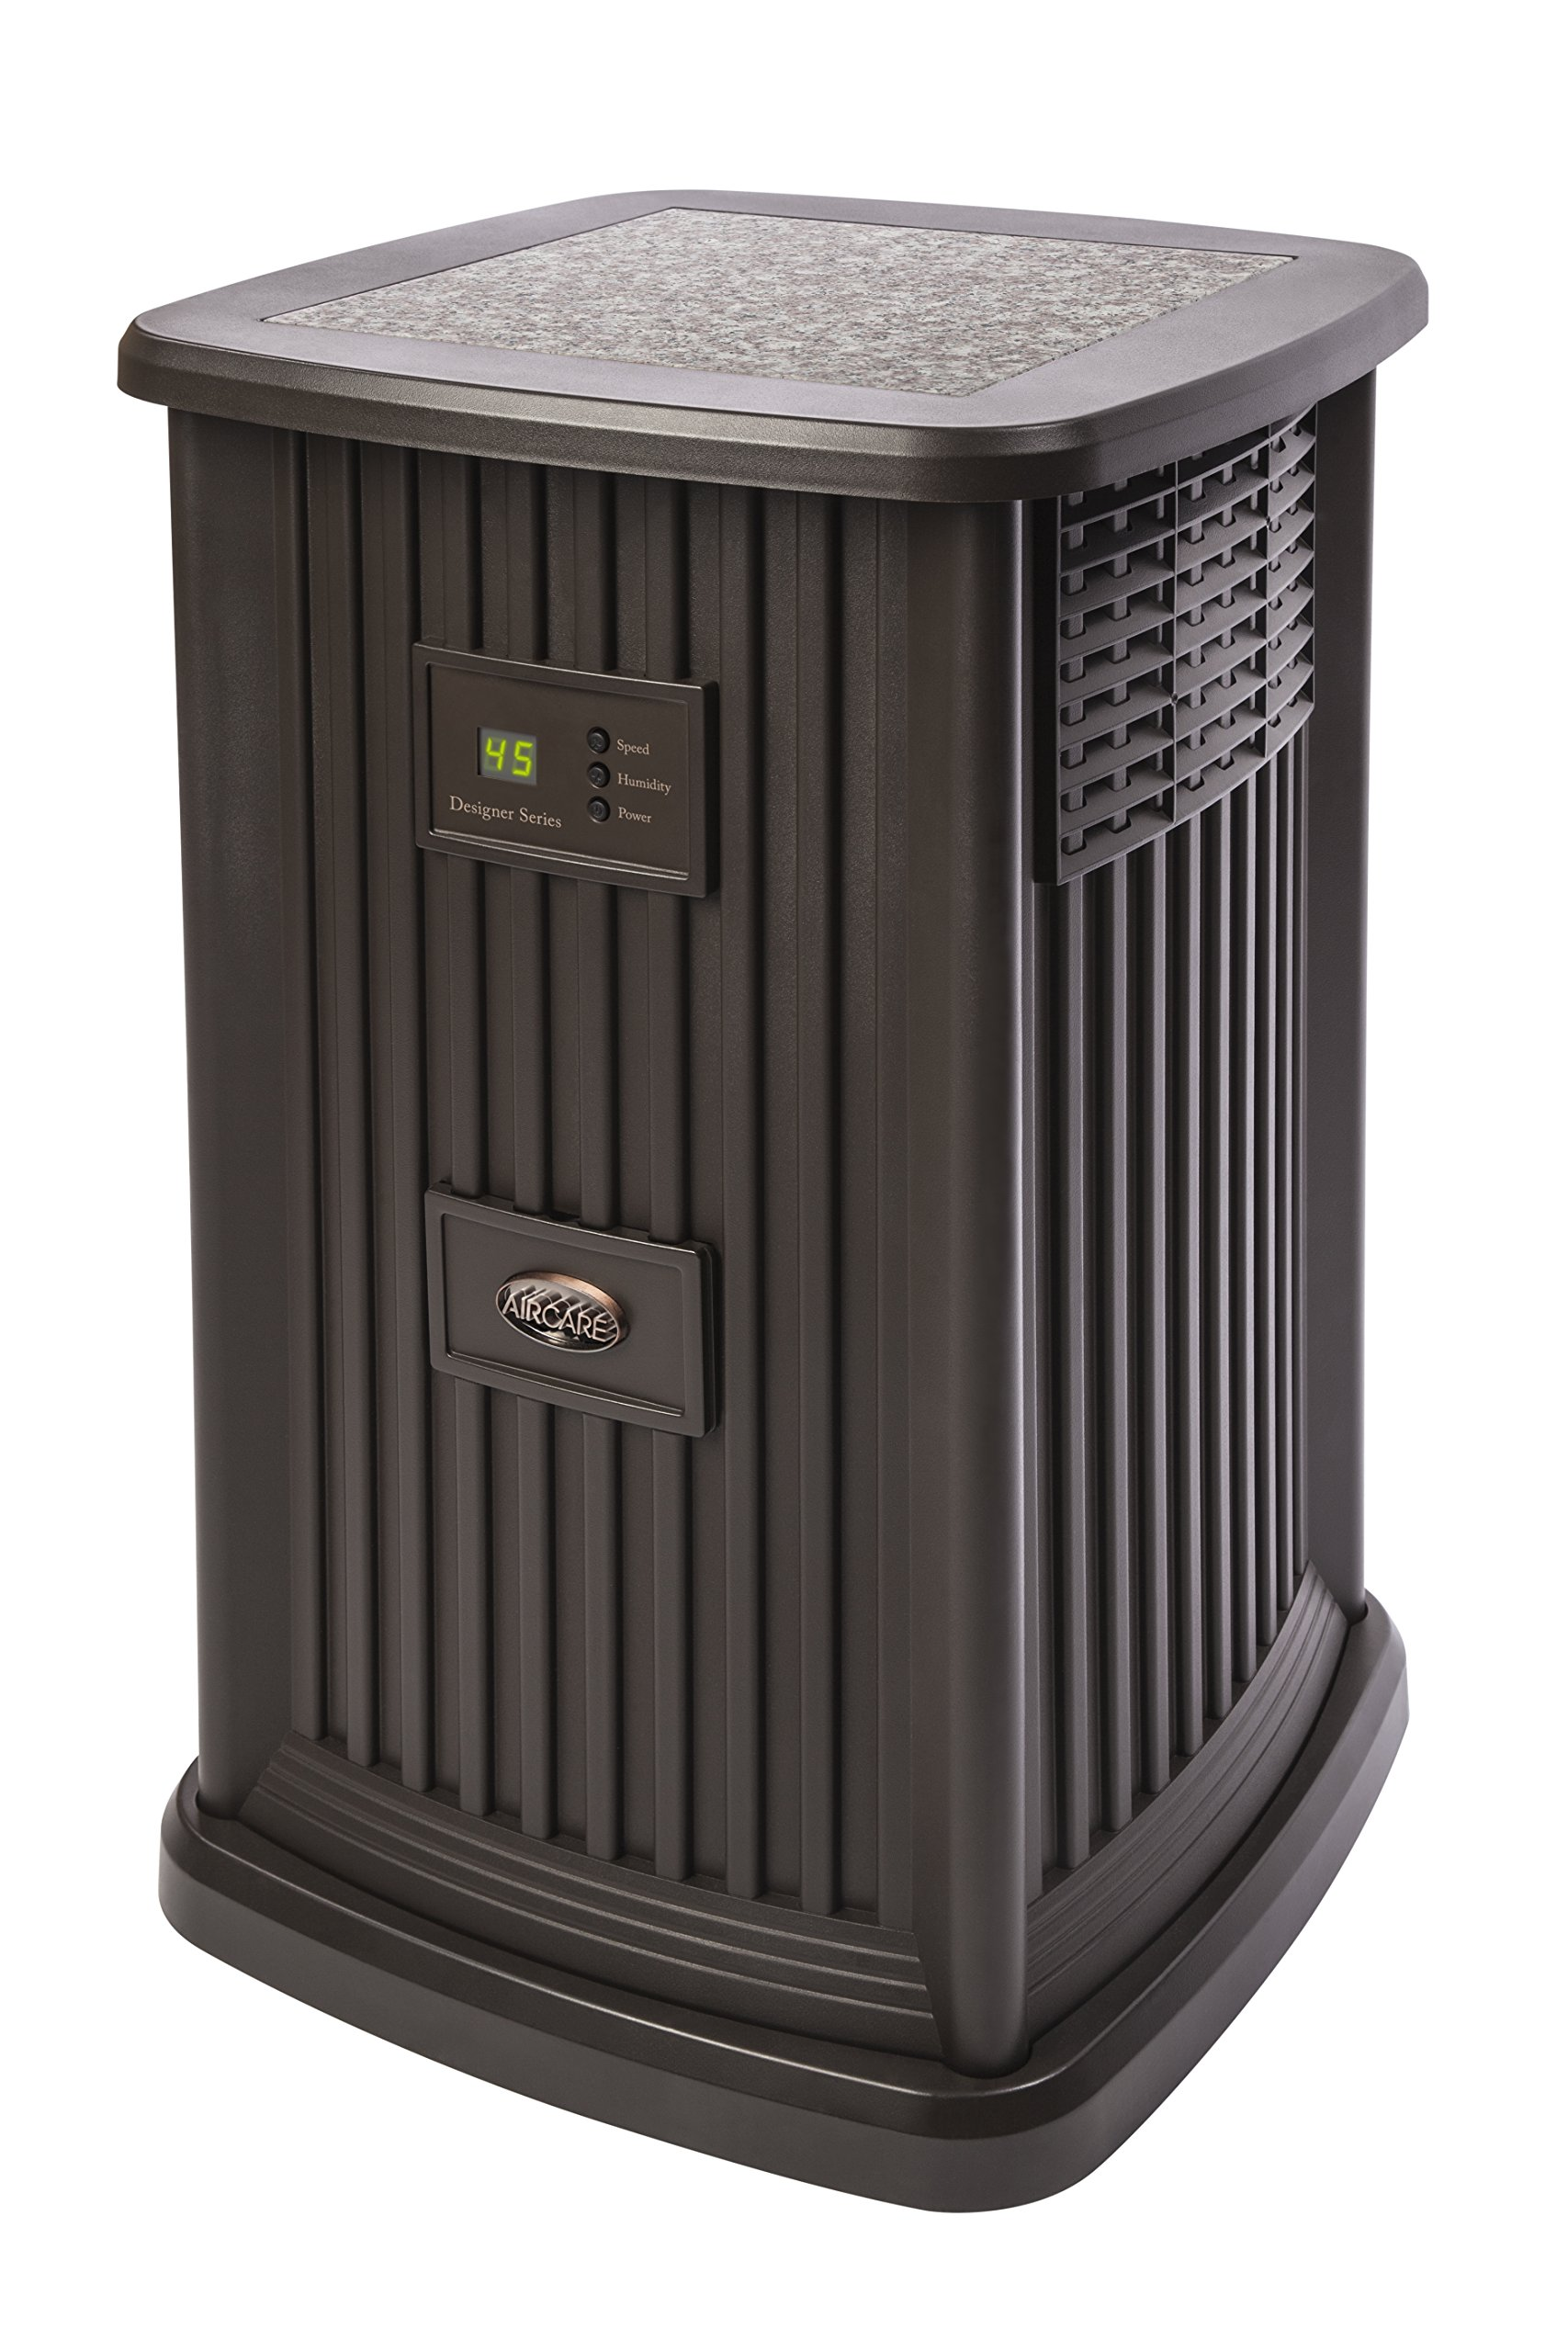 AIRCARE EP9 800 Digital Whole-House Pedestal-Style Evaporative Humidifier, Espresso by Essick Air (Image #4)